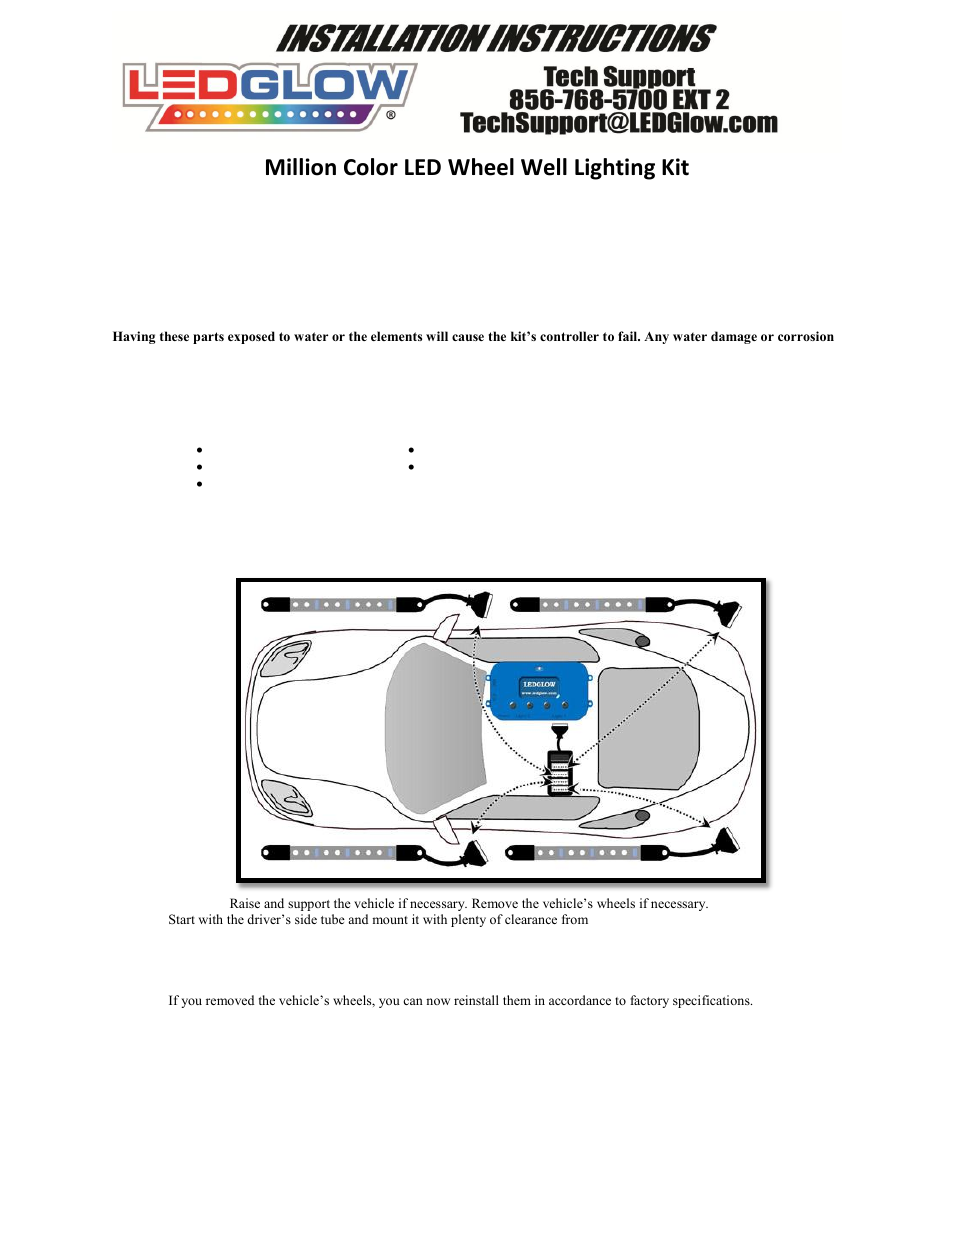 LEDGlow Million Color LED Wheel Well Kit User Manual | 3 pages